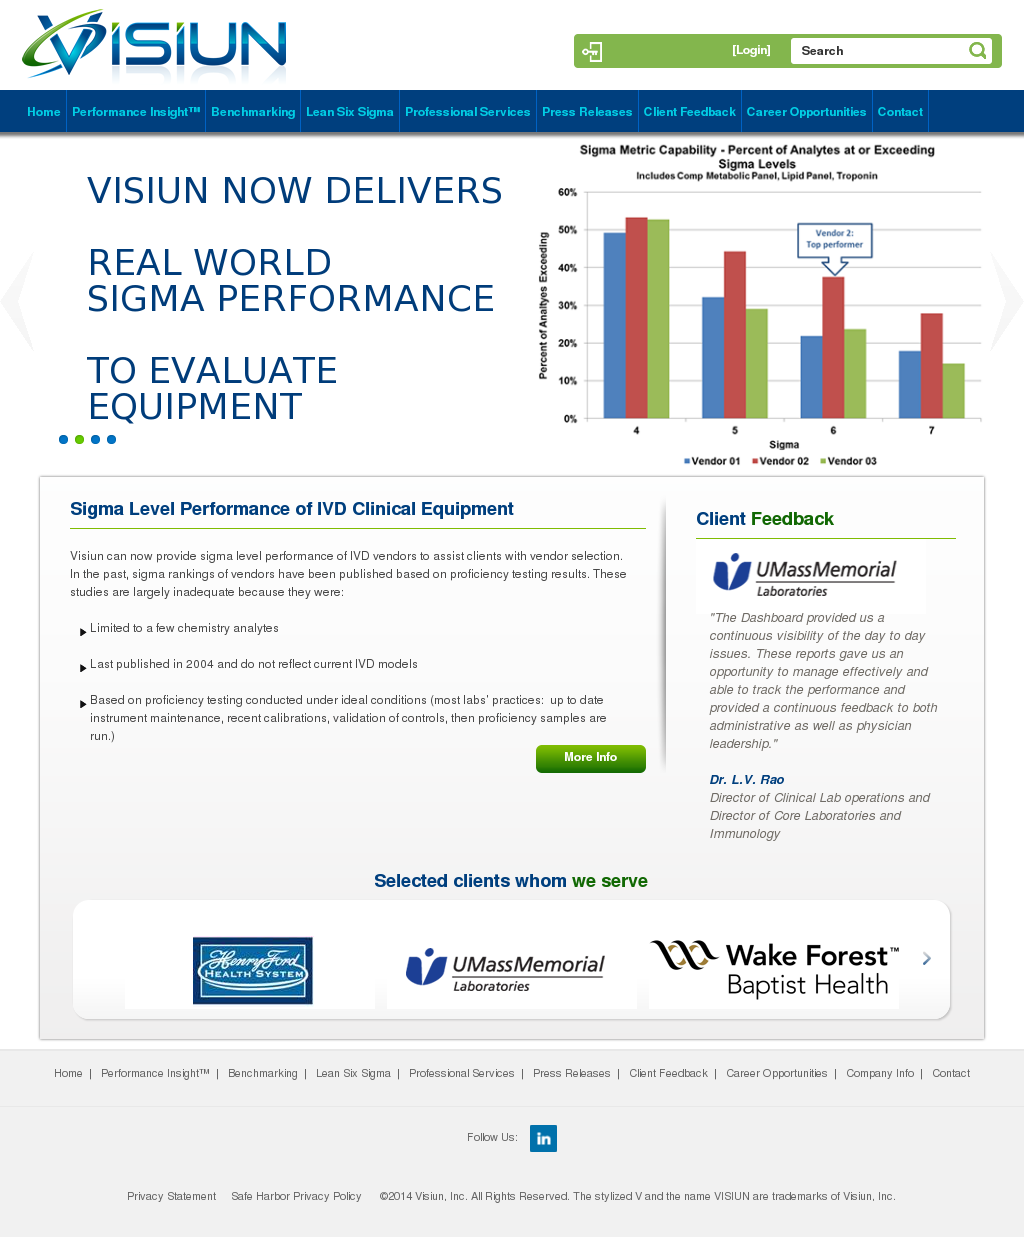 Visiun Competitors, Revenue and Employees - Owler Company